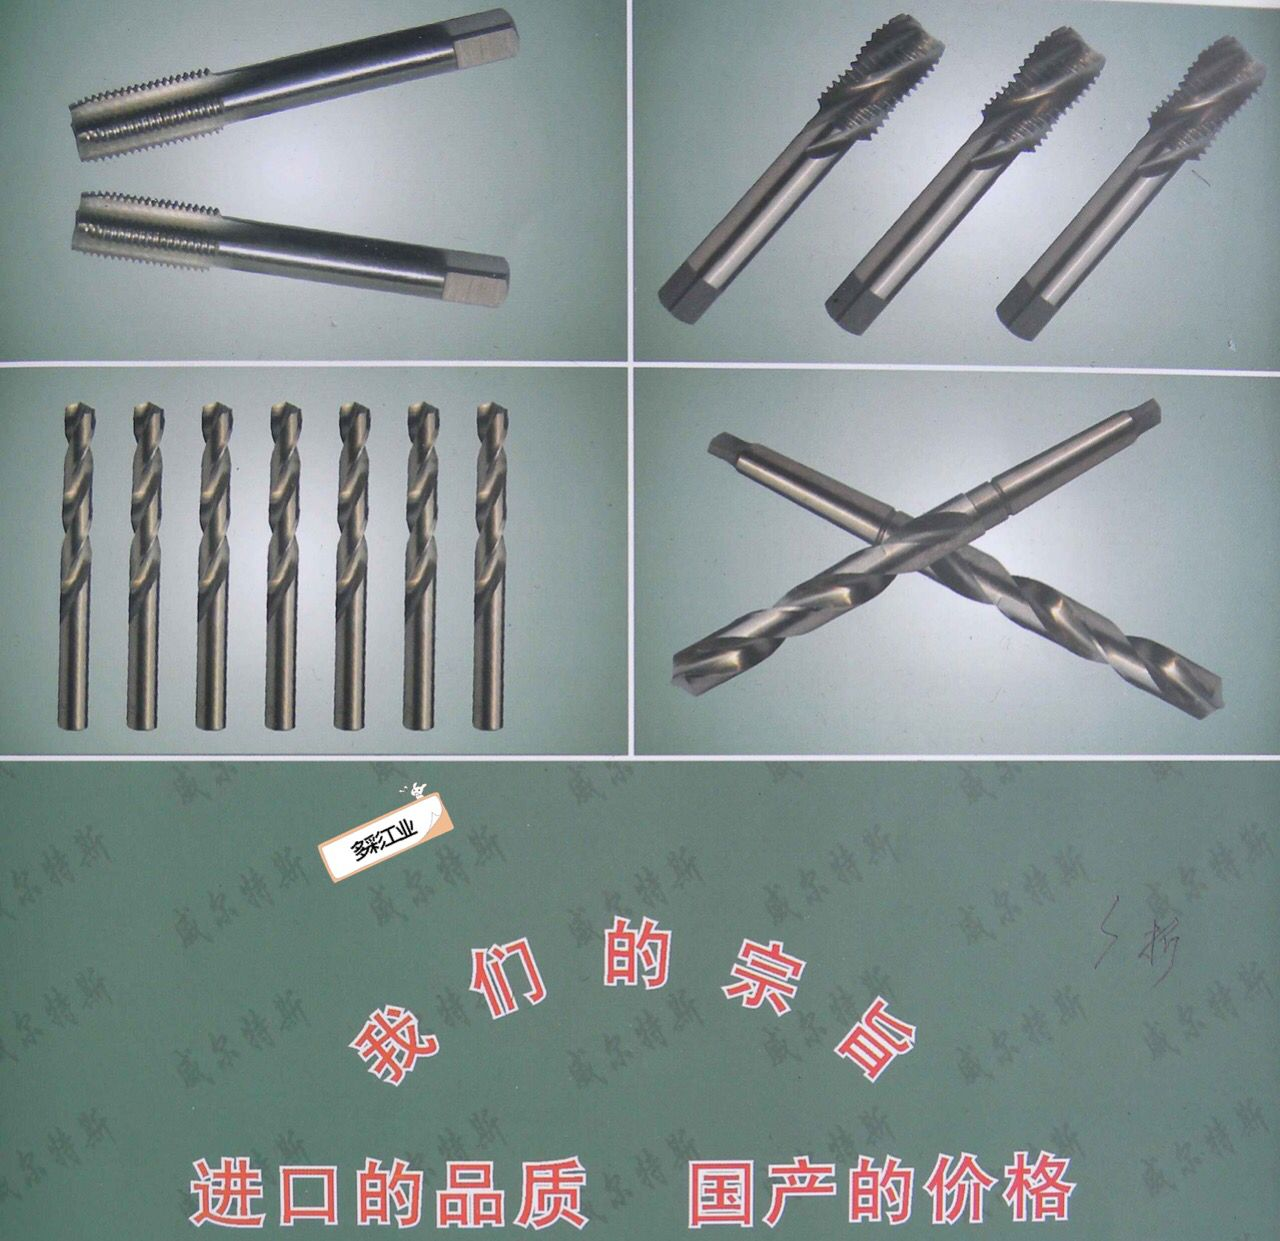 Sino German joint venture will Corrientes brand high cobalt stainless steel American Standard tap tap 5#-3/4 specifications